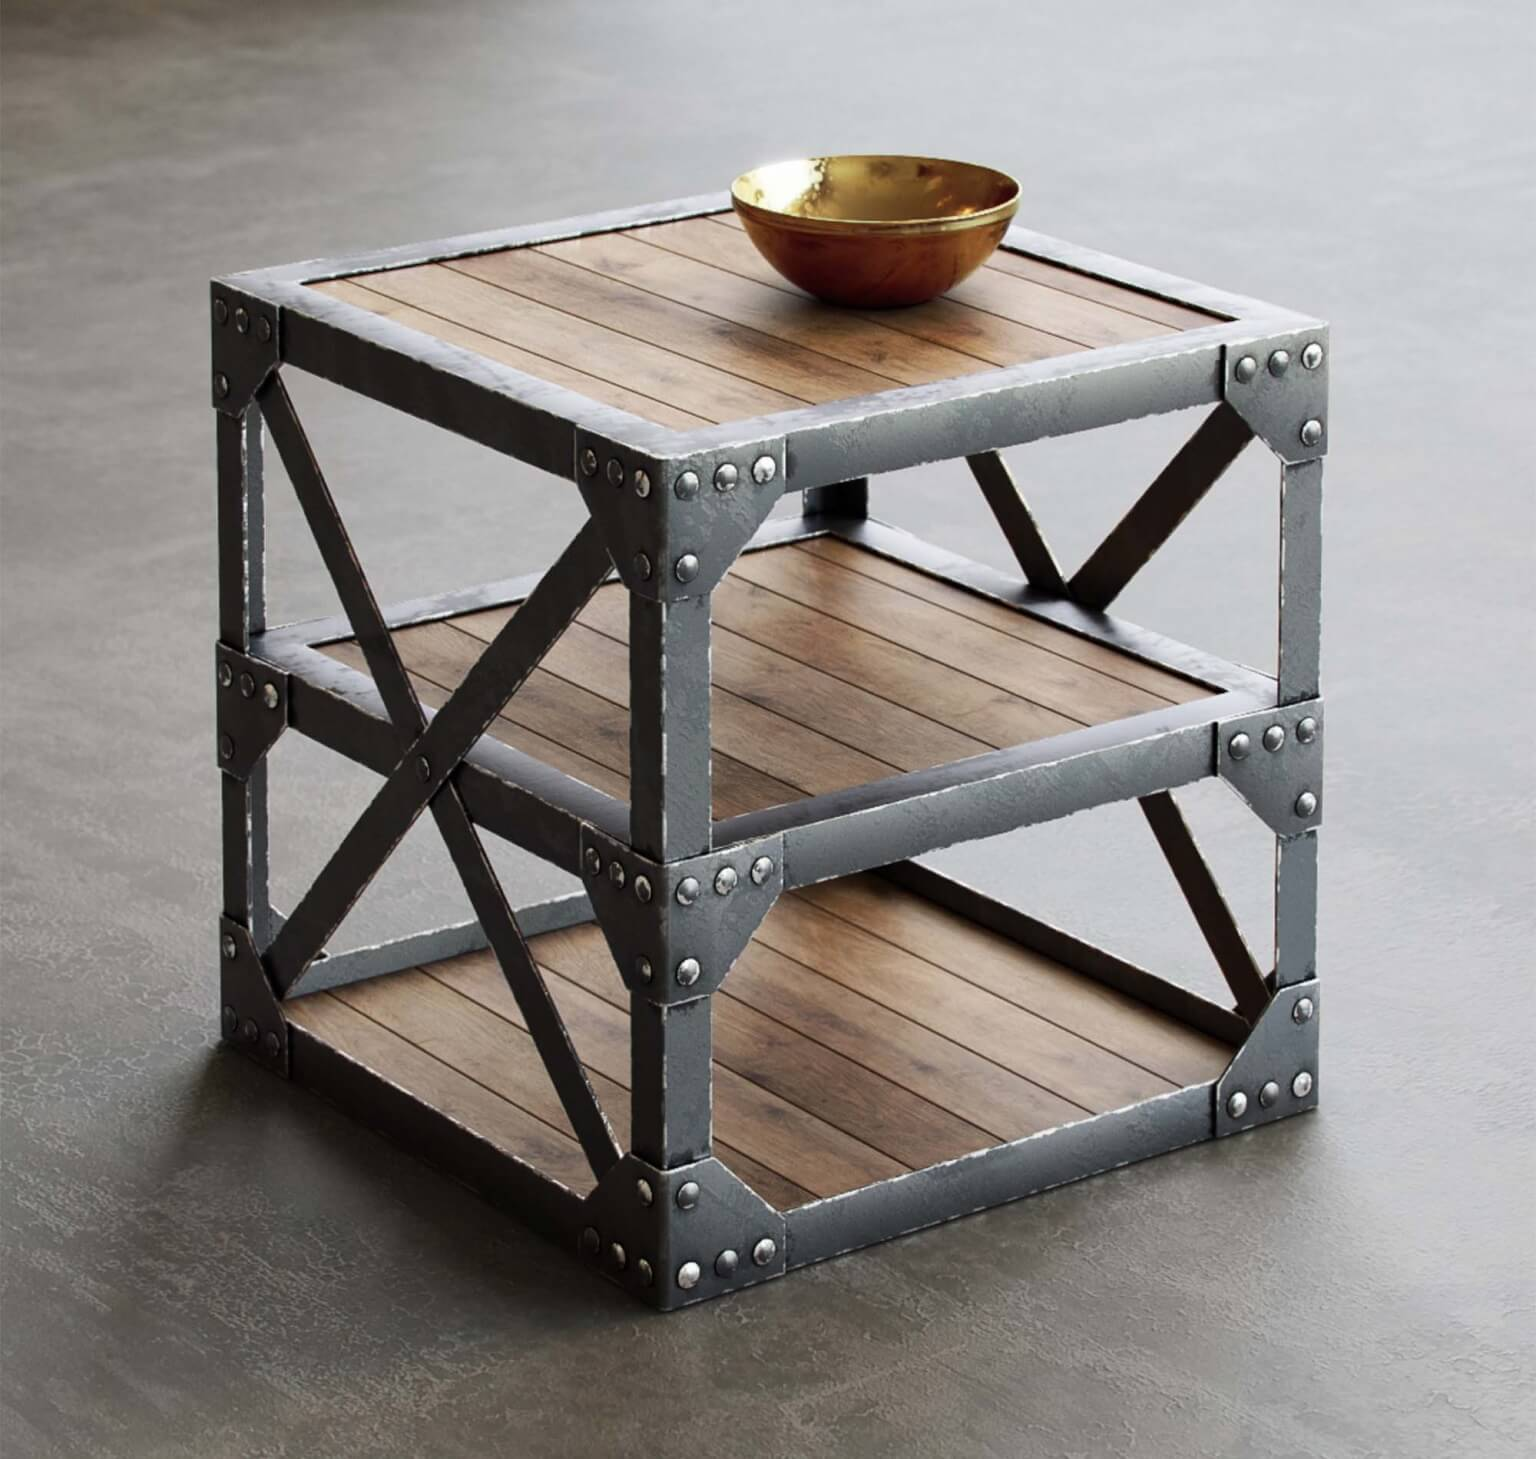 Vintage Style Table 3D Model